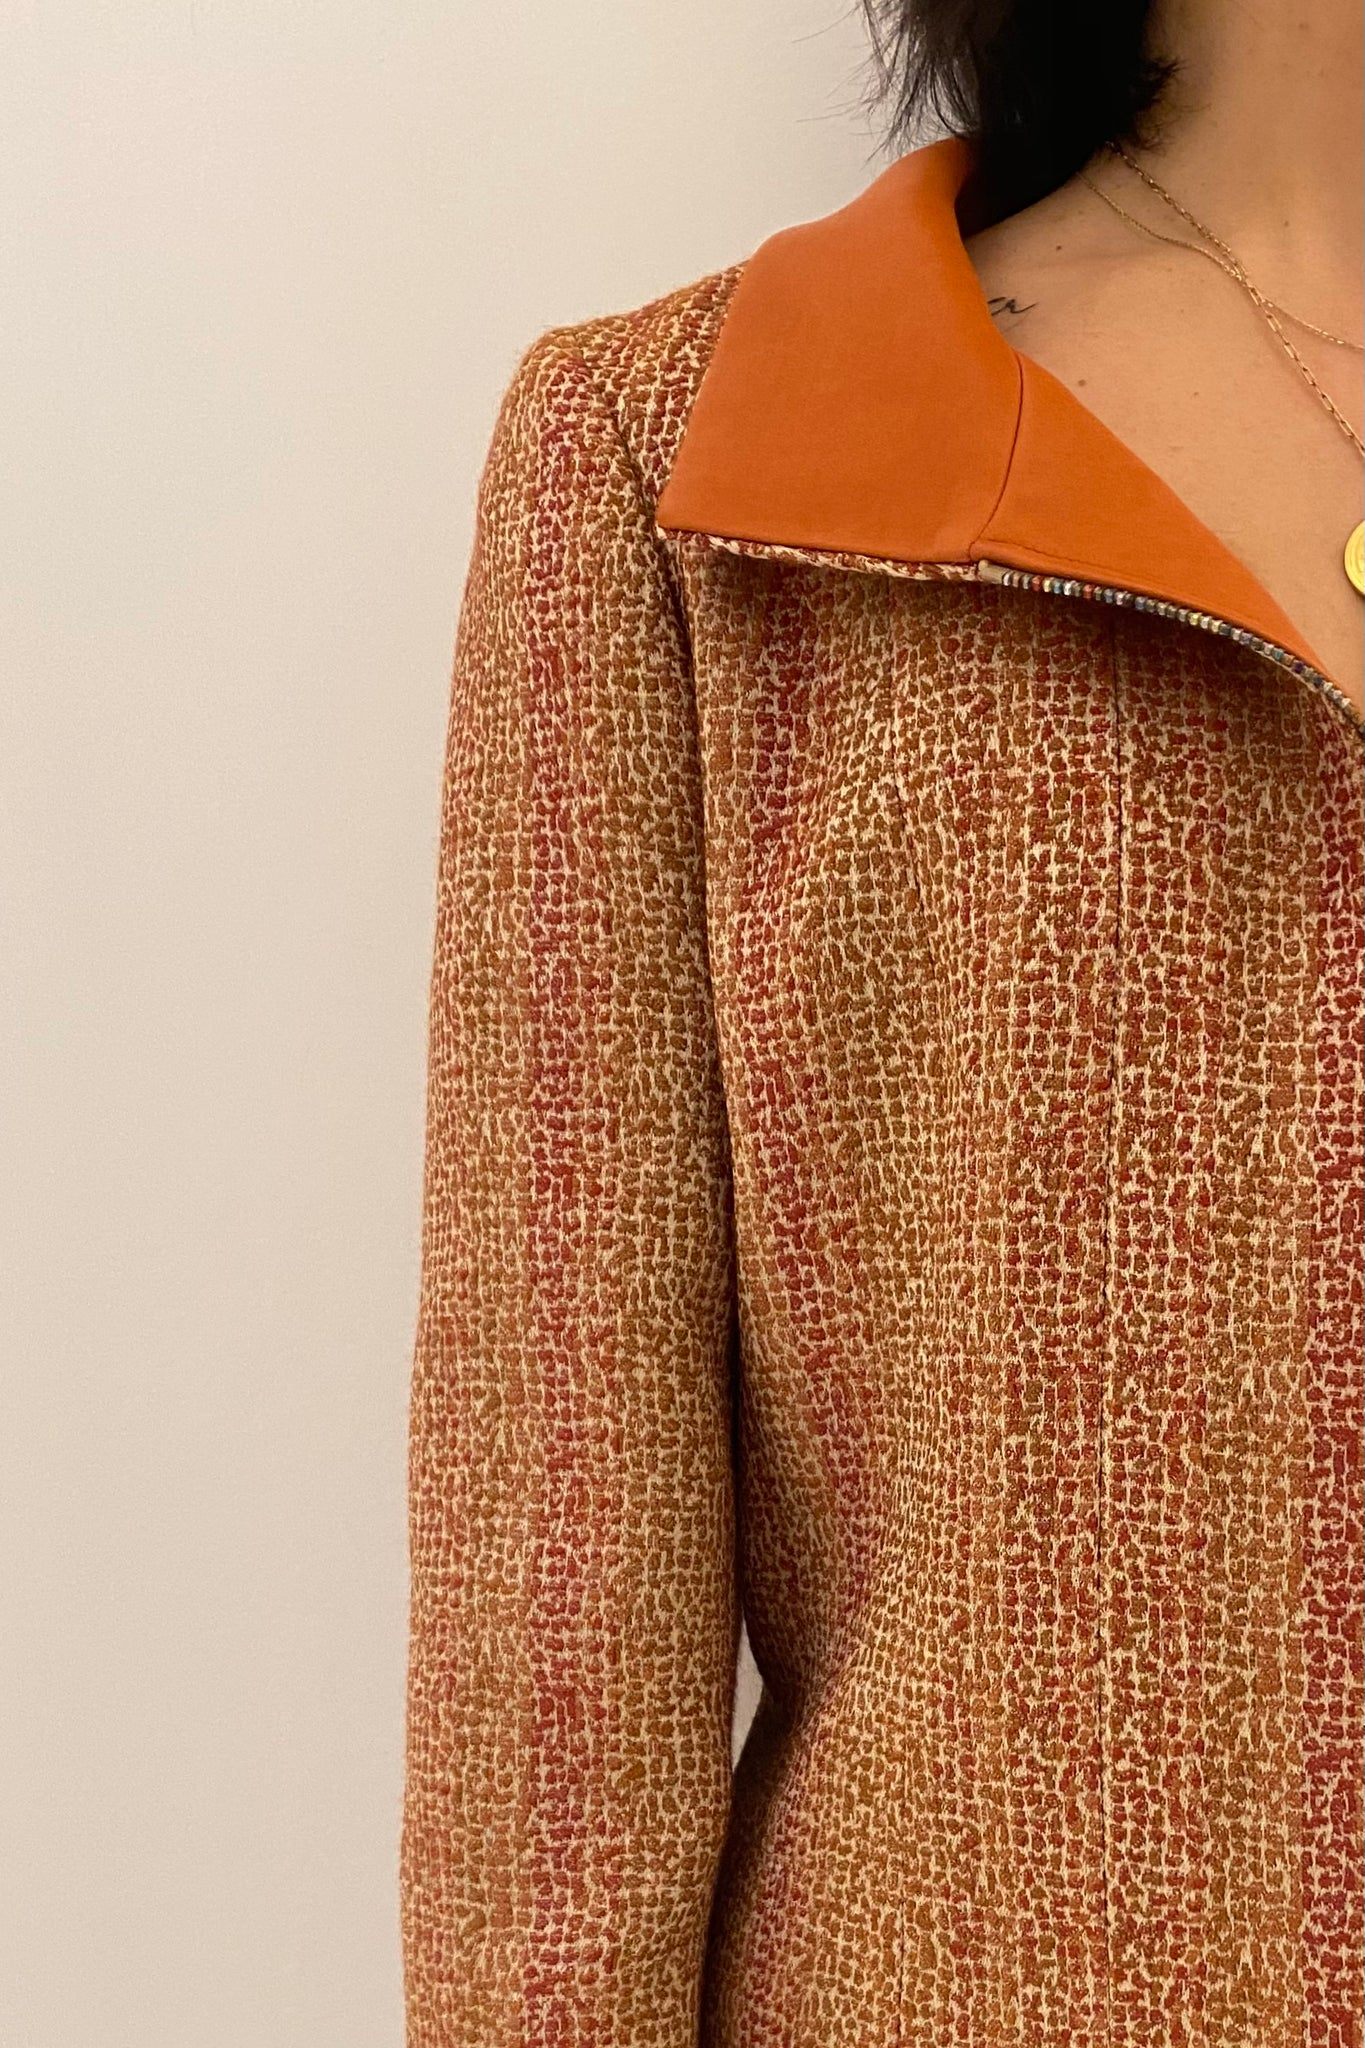 Chanel Orange Tweed Cruise Jacket